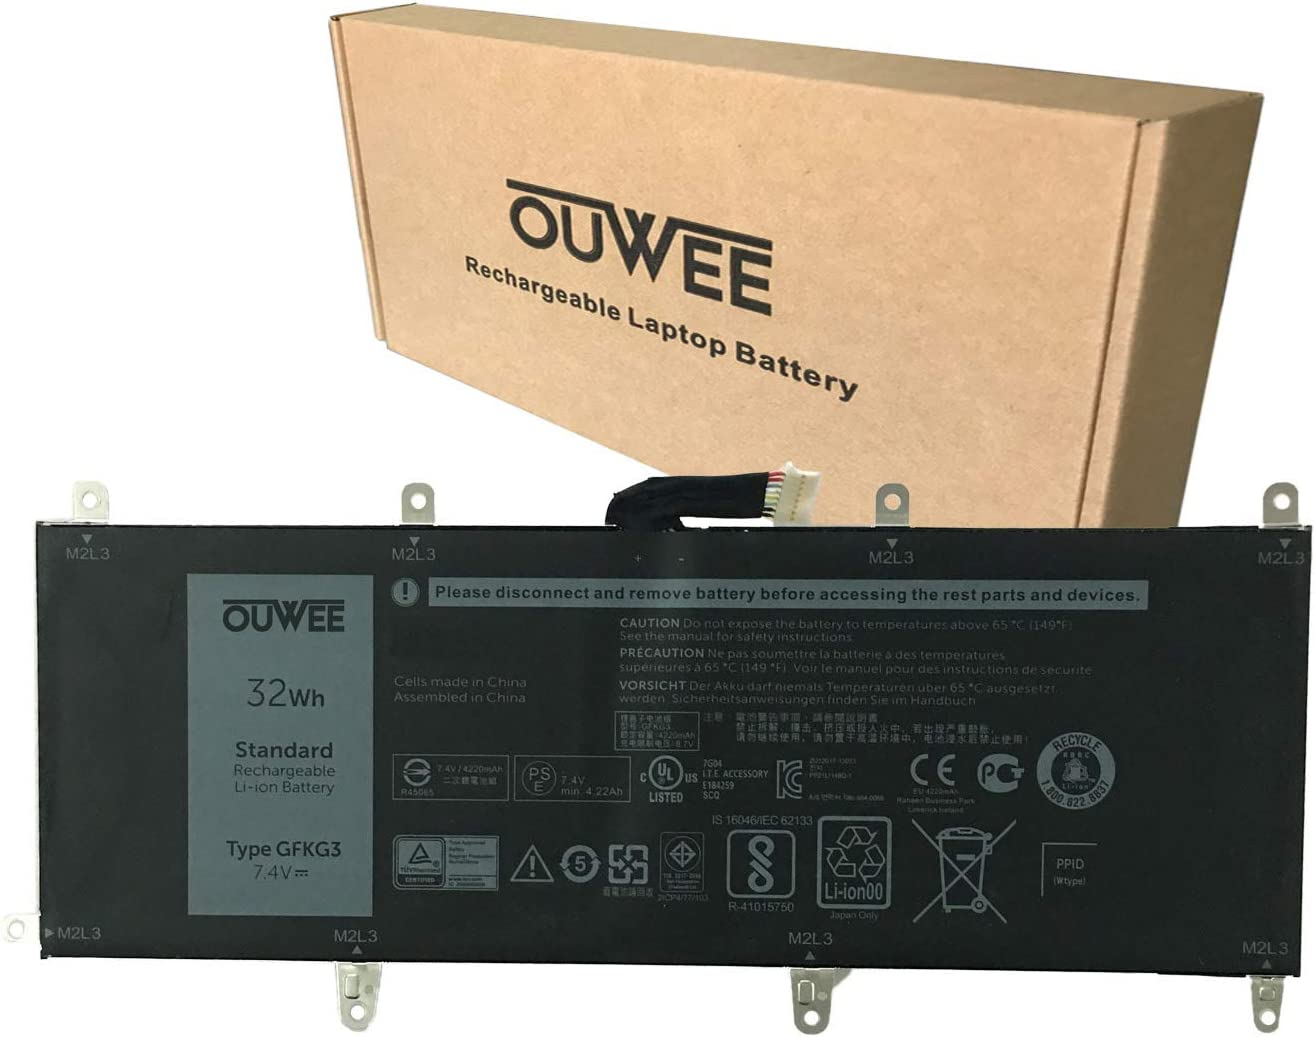 OUWEE GFKG3 Laptop Special Campaign Battery Compatible with 505 It is very popular 10 Venue DELL Pro